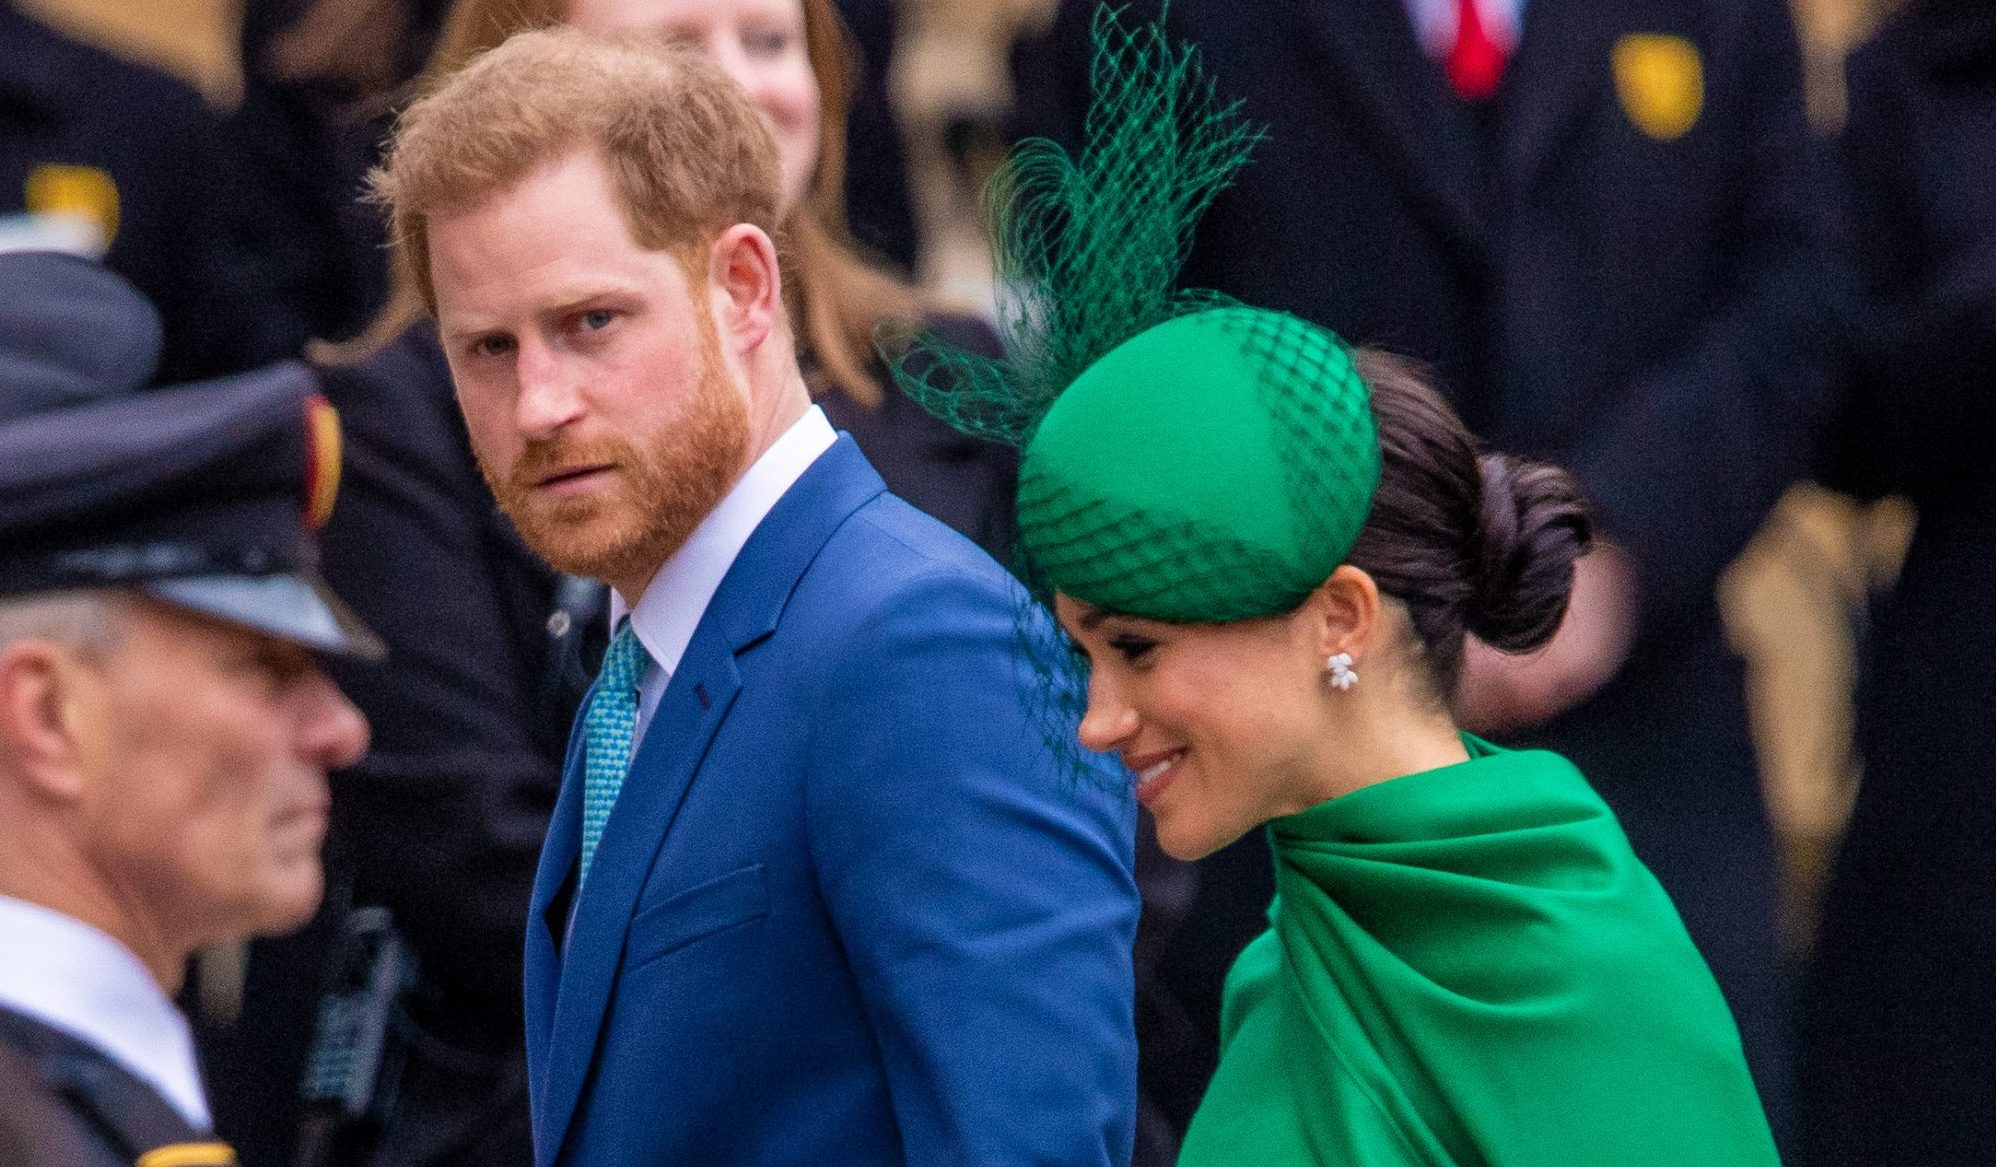 Prince Harry and Meghan Markle post final Instagram message as Sussex Royal